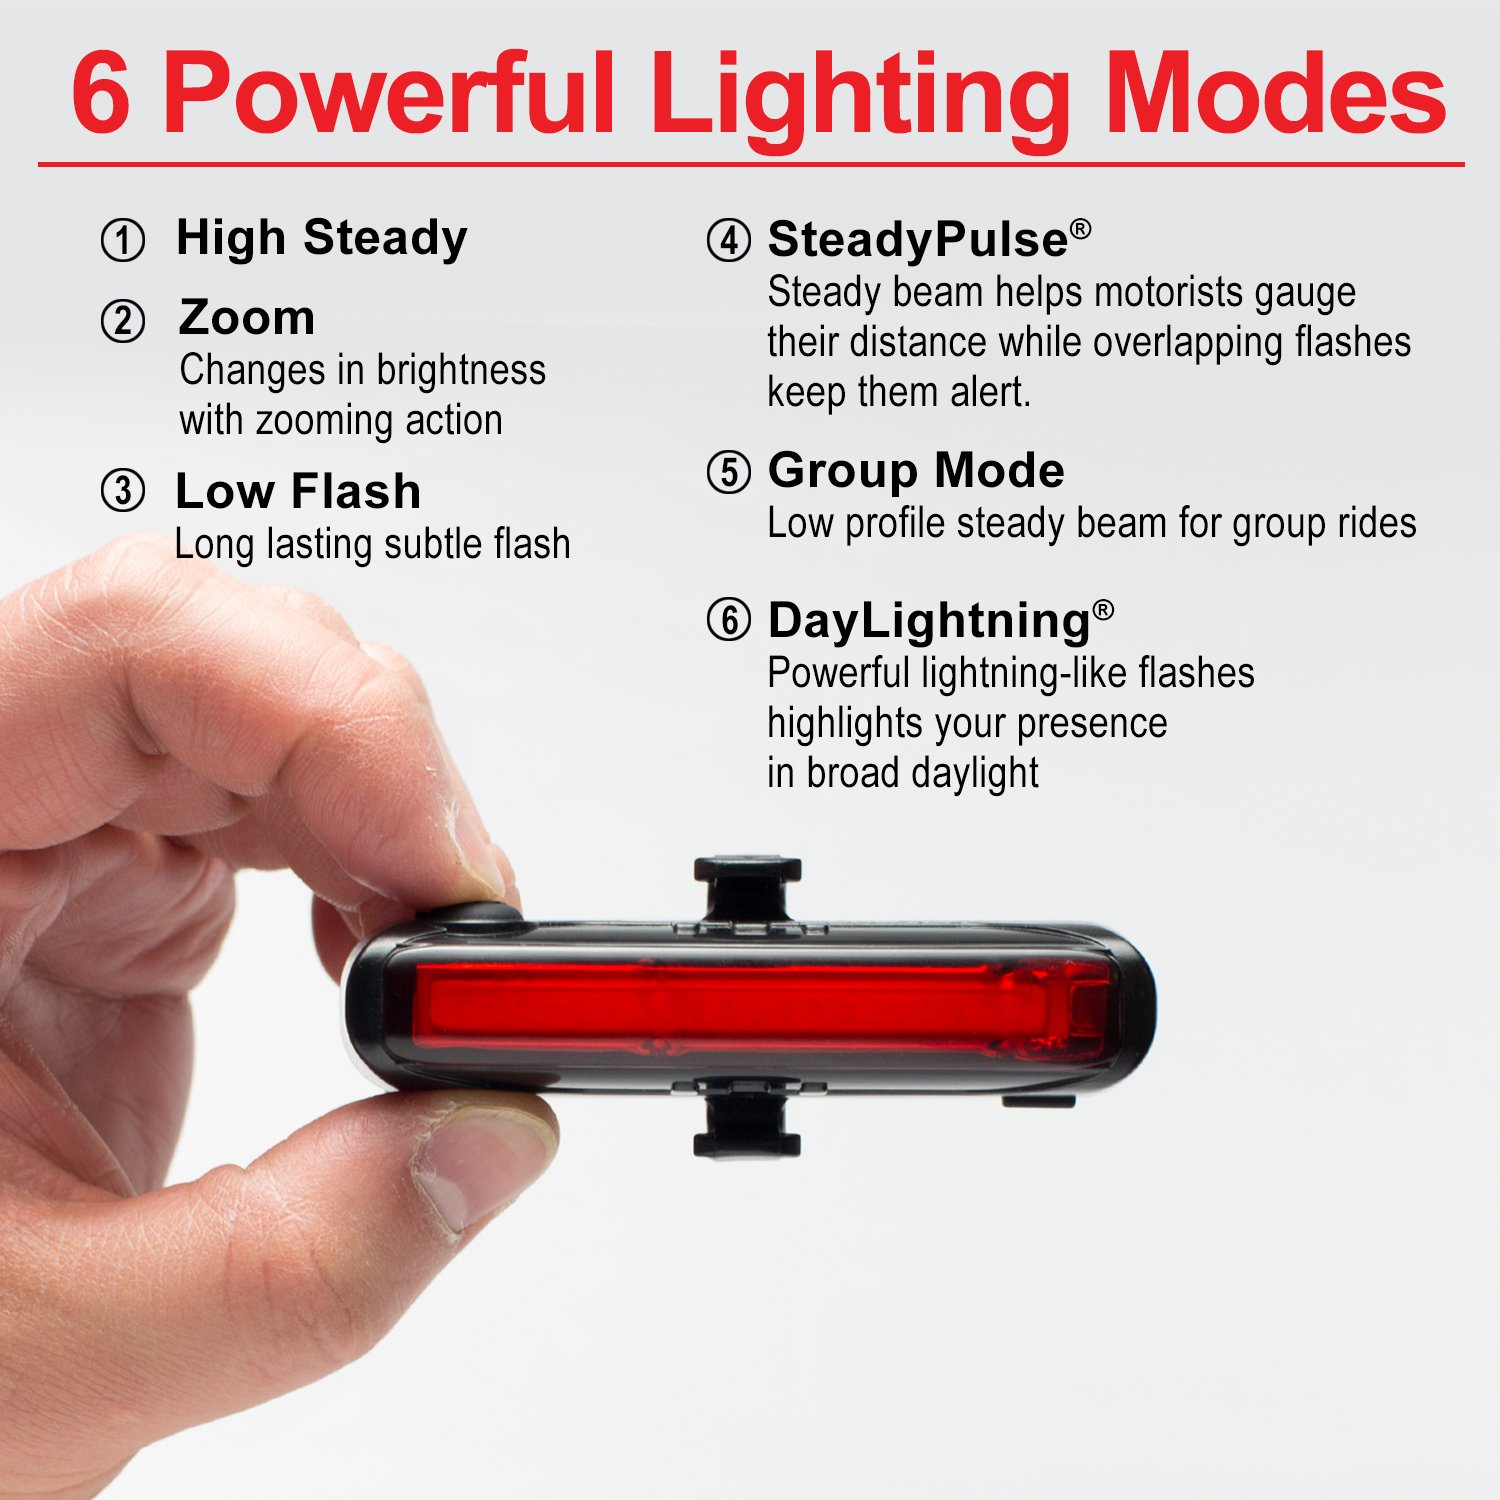 Cygolite Hotrod 50 lm USB Rechargeable Bicycle Tail Light by Cygolite (Image #3)